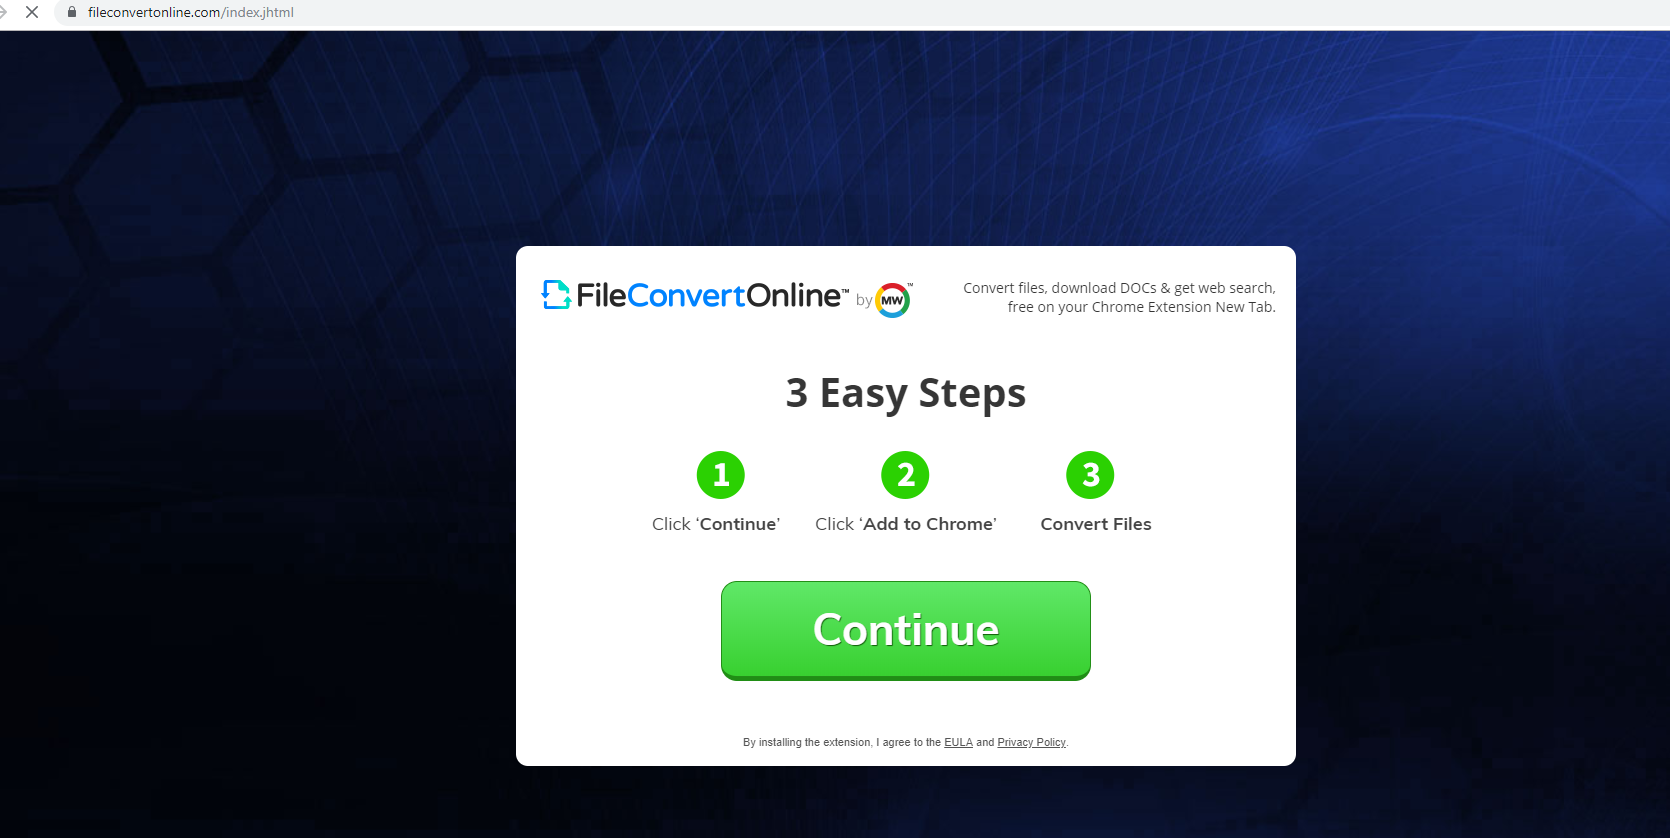 FileConvertOnline poisto